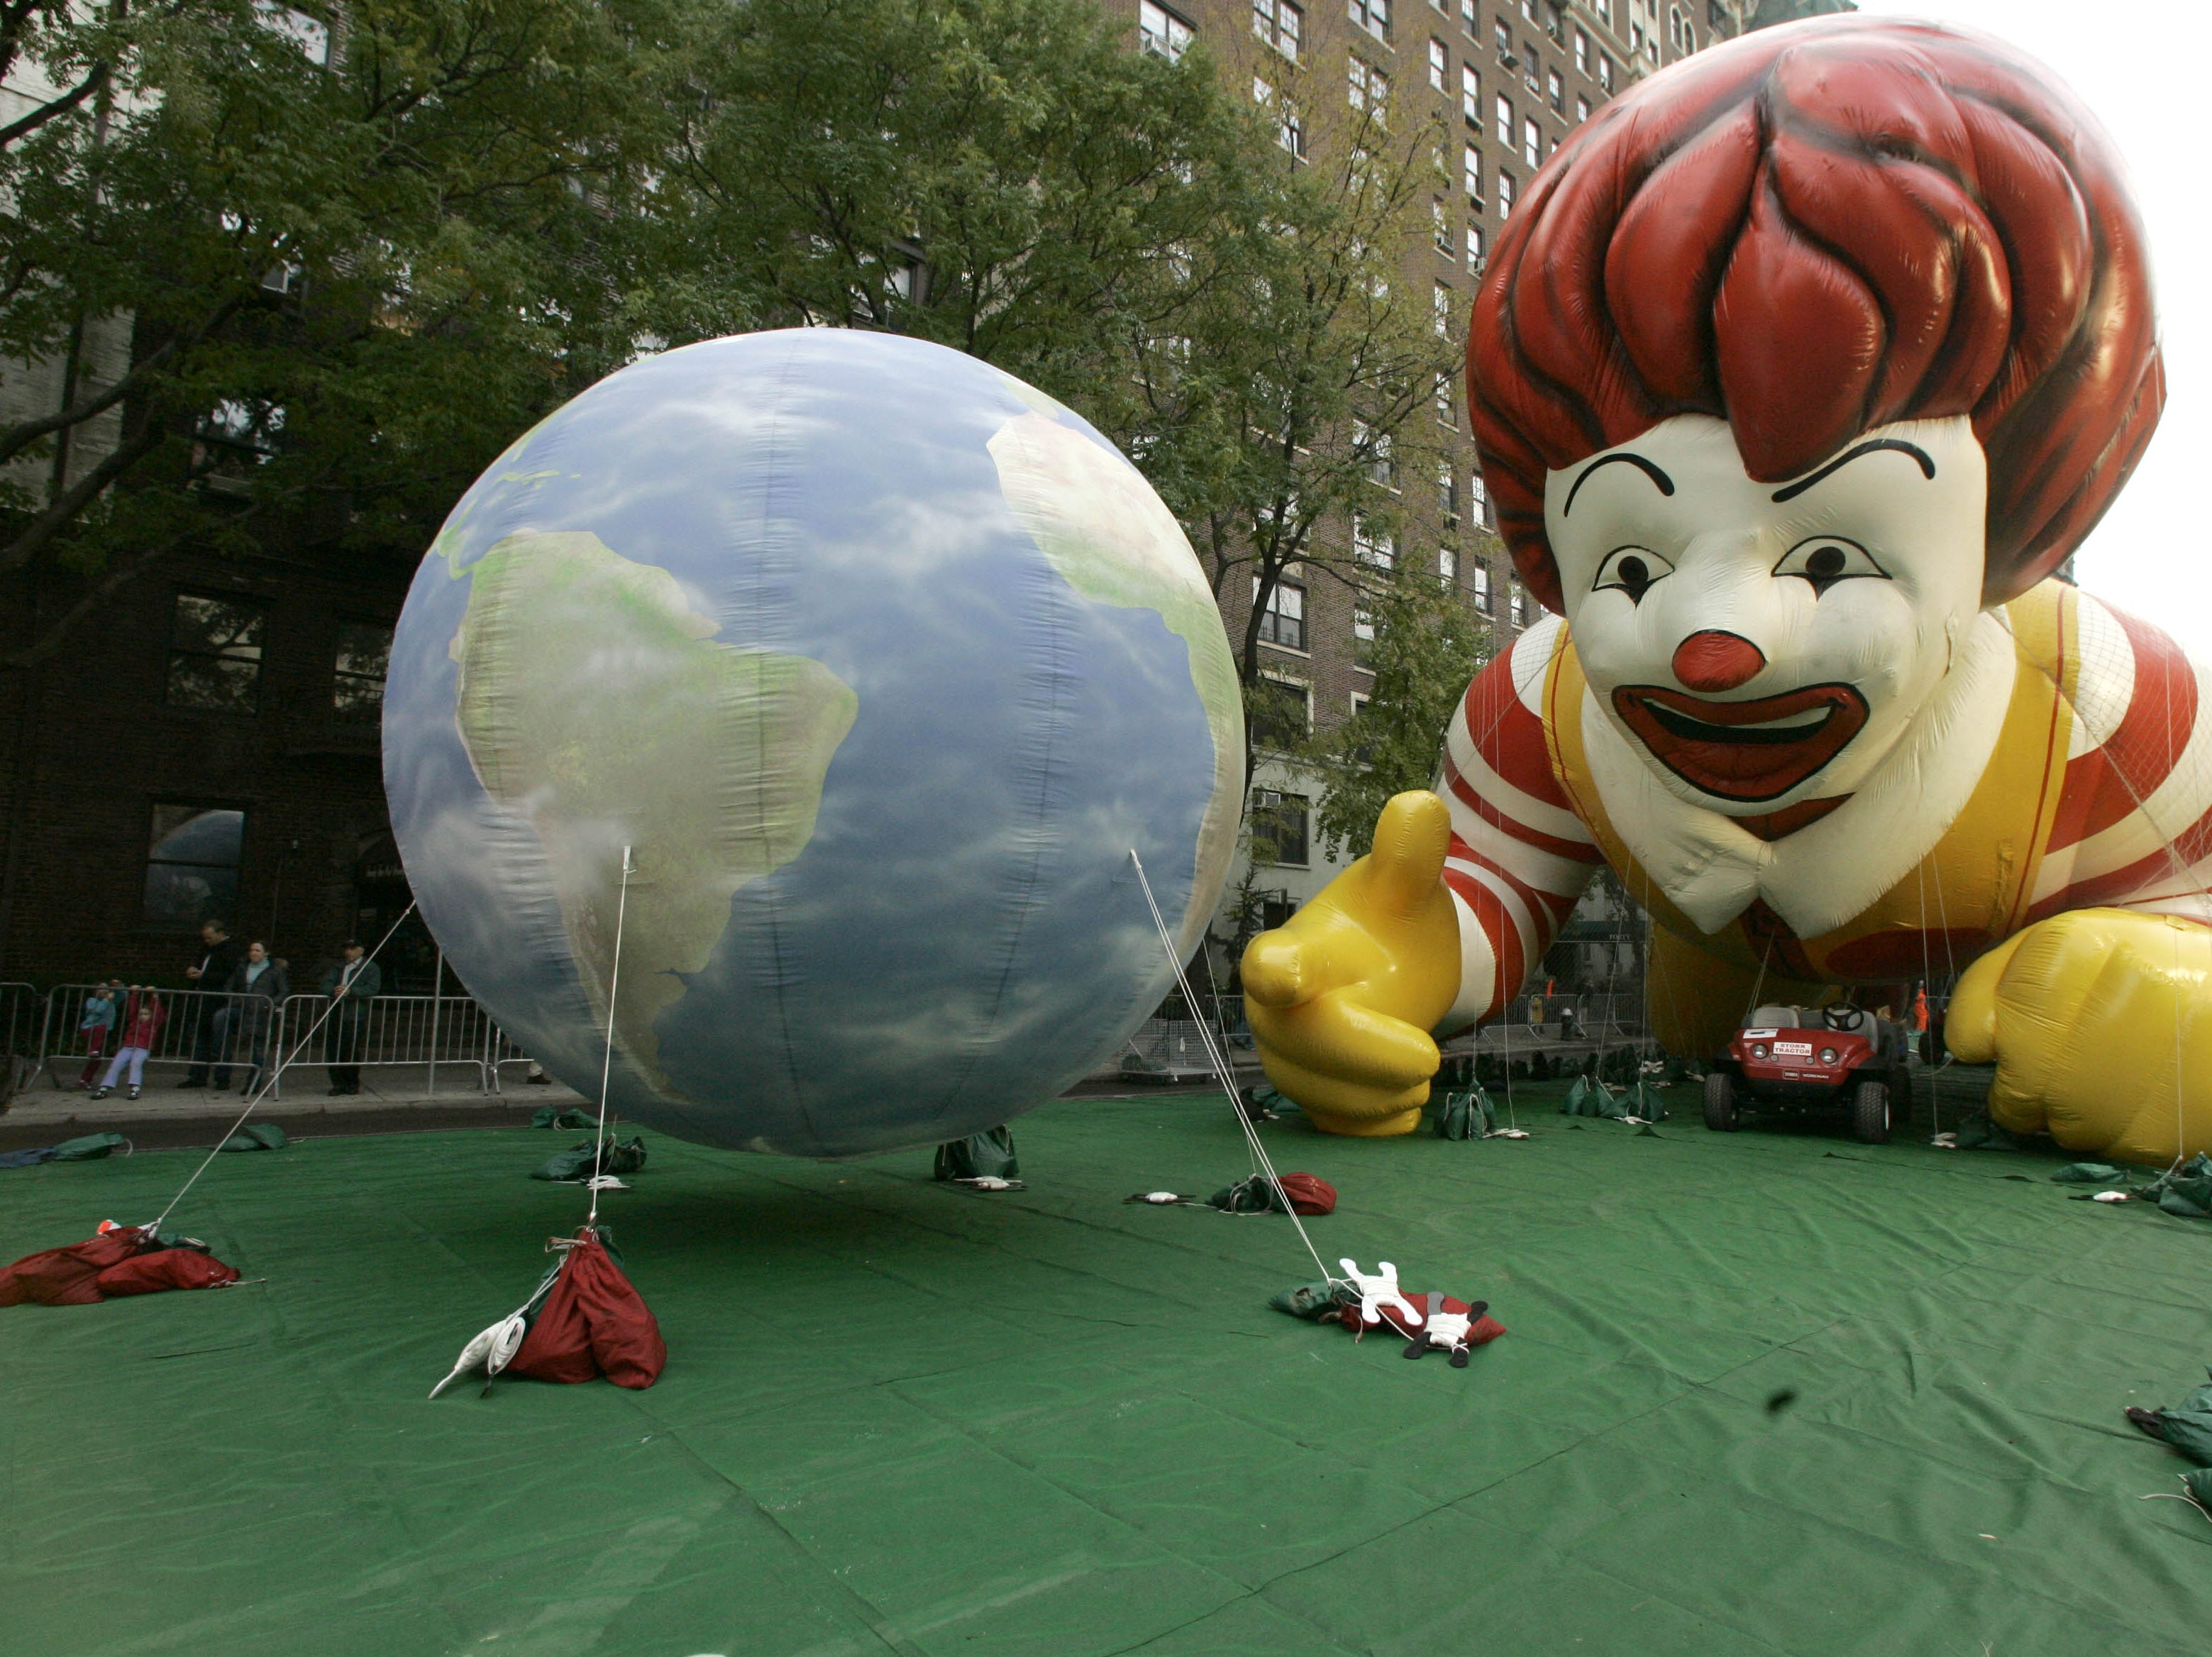 """An earth balloon and the Ronald McDonald balloon are secured to the ground with sand bags during Macy's 81st Annual Thanksgiving Day Parade """"Inflation Eve,"""" Wednesday, Nov. 21, 2007 in New York. Preparations started Wednesday afternoon as giant balloons and many smaller inflatable ones were filled with a helium/air mixture for the Thanksgiving parade march down 5th Ave. (AP Photo/Mary Altaffer)"""